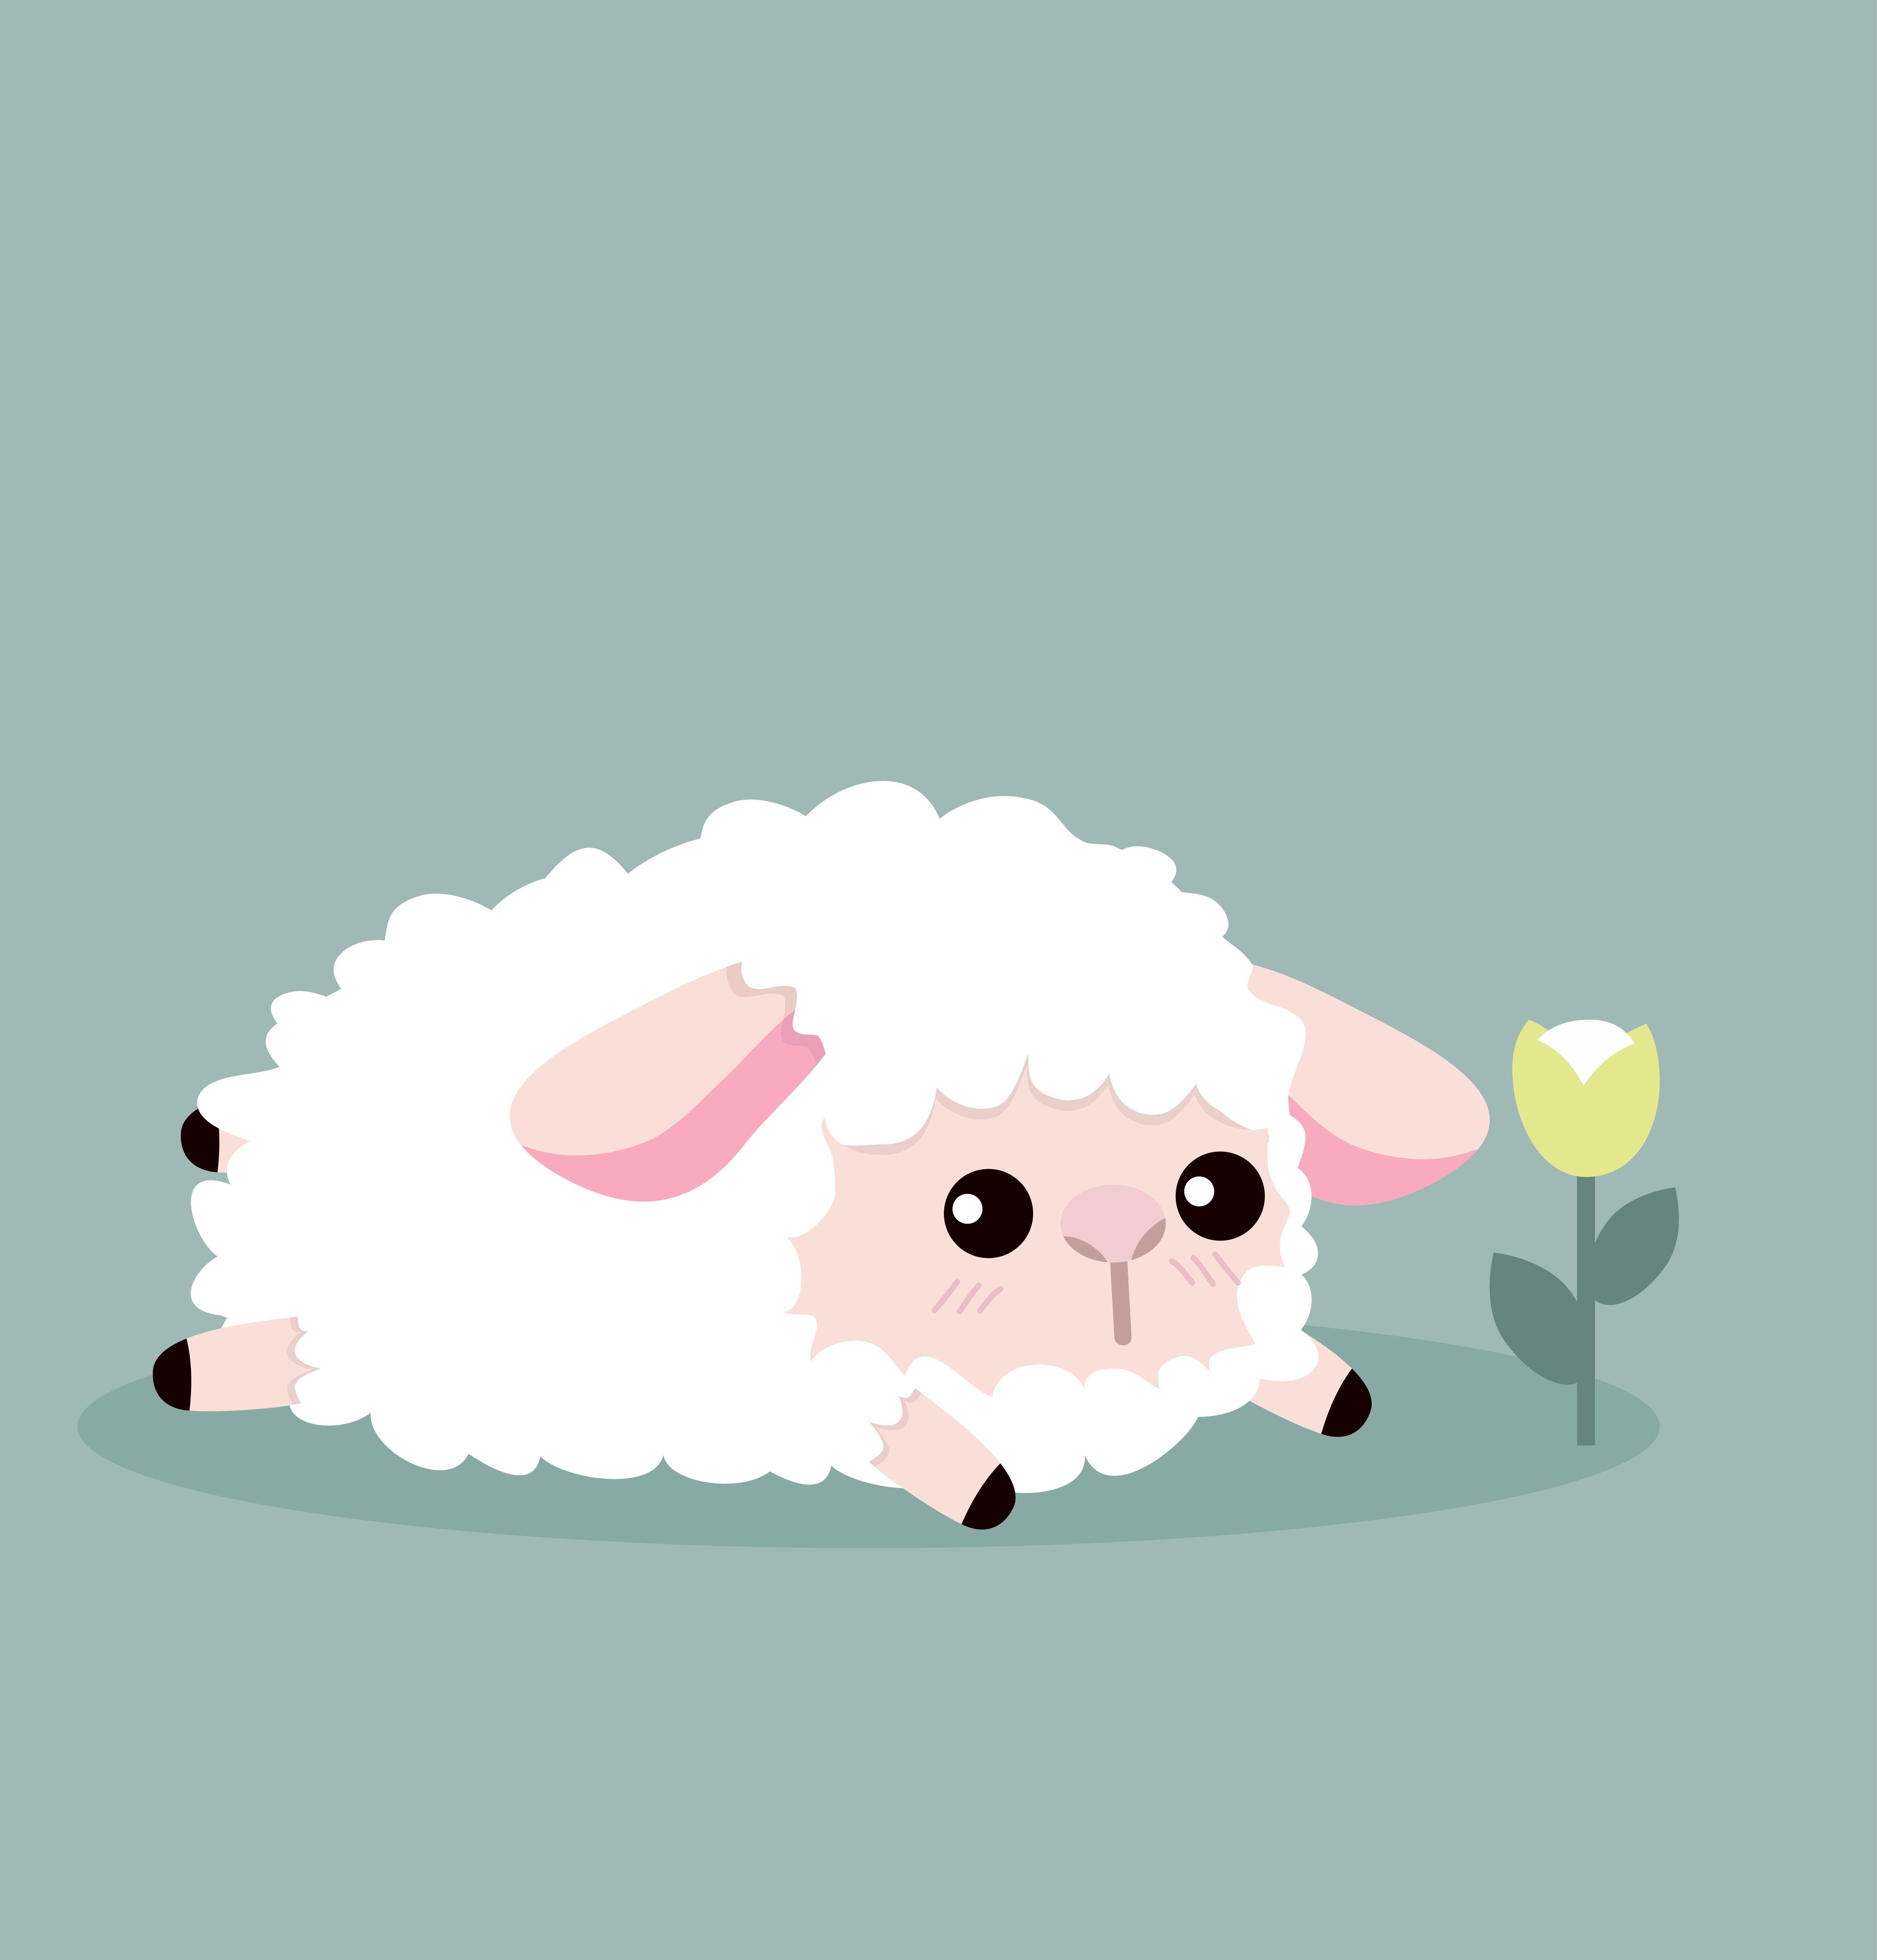 Cute Sheep And Flower Download Free Vectors Clipart